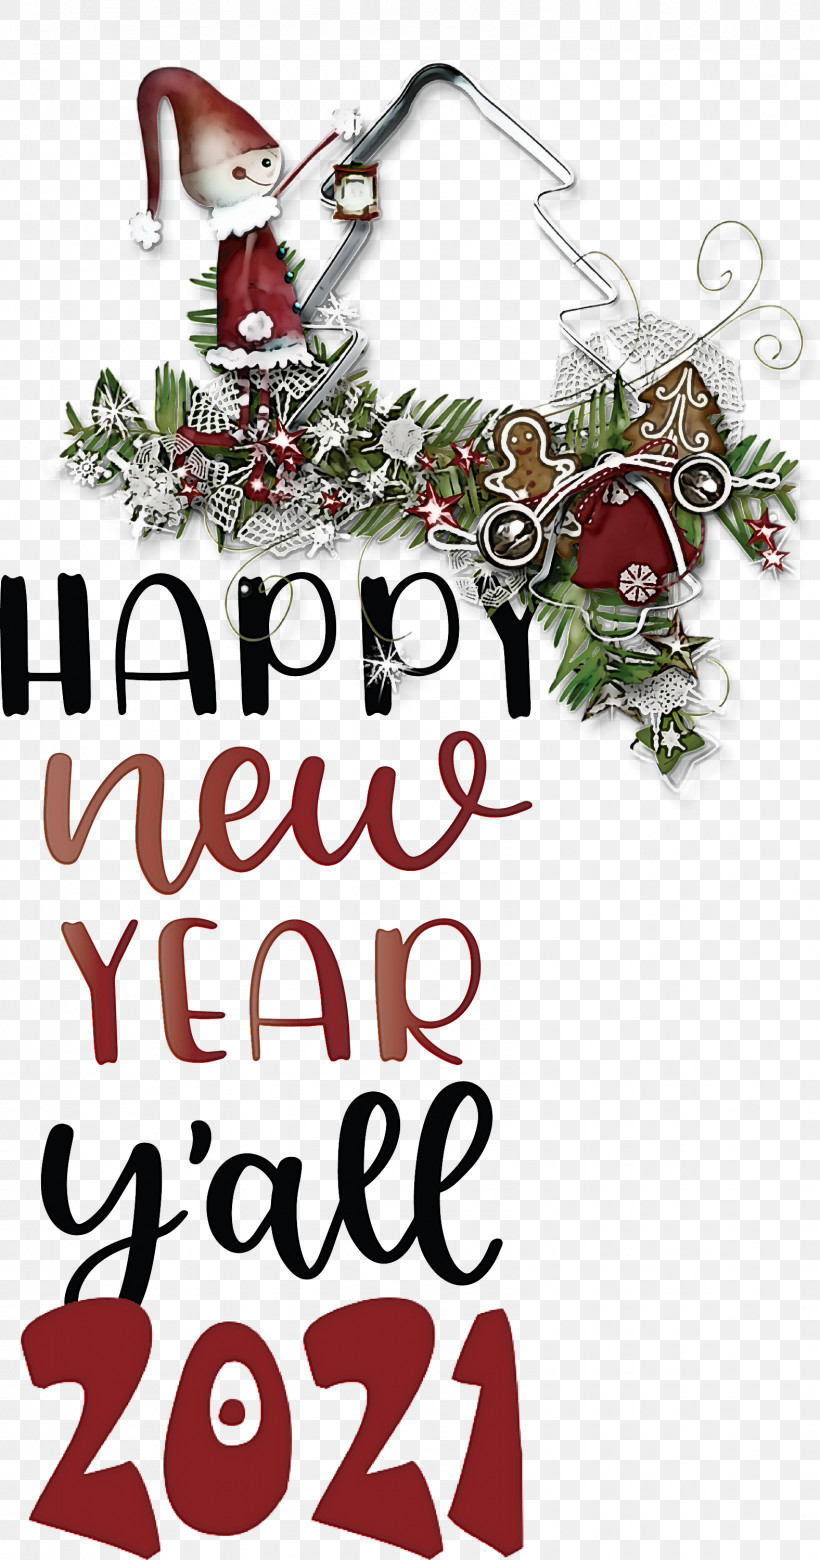 2021 Happy New Year 2021 New Year 2021 Wishes, PNG, 1576x3000px, 2021 Happy New Year, 2021 New Year, 2021 Wishes, Character, Christmas Day Download Free